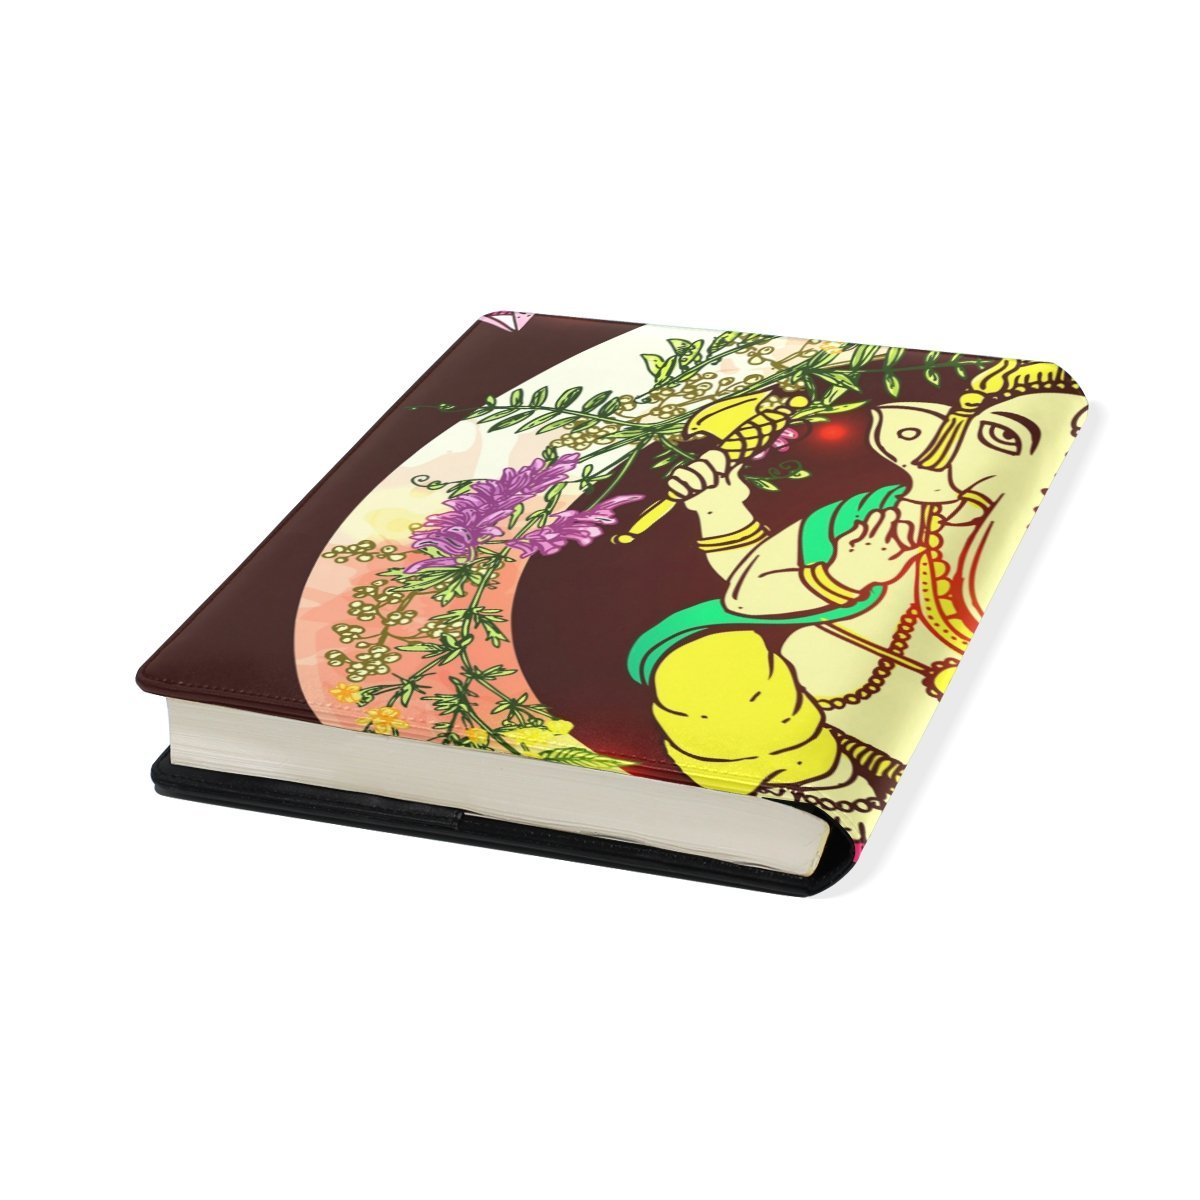 Sunlome Ganesha Indian Elephant Pattern Stretchable PU Leather Book Cover 9 x 11 Inches Fits for School Hardcover Textbooks